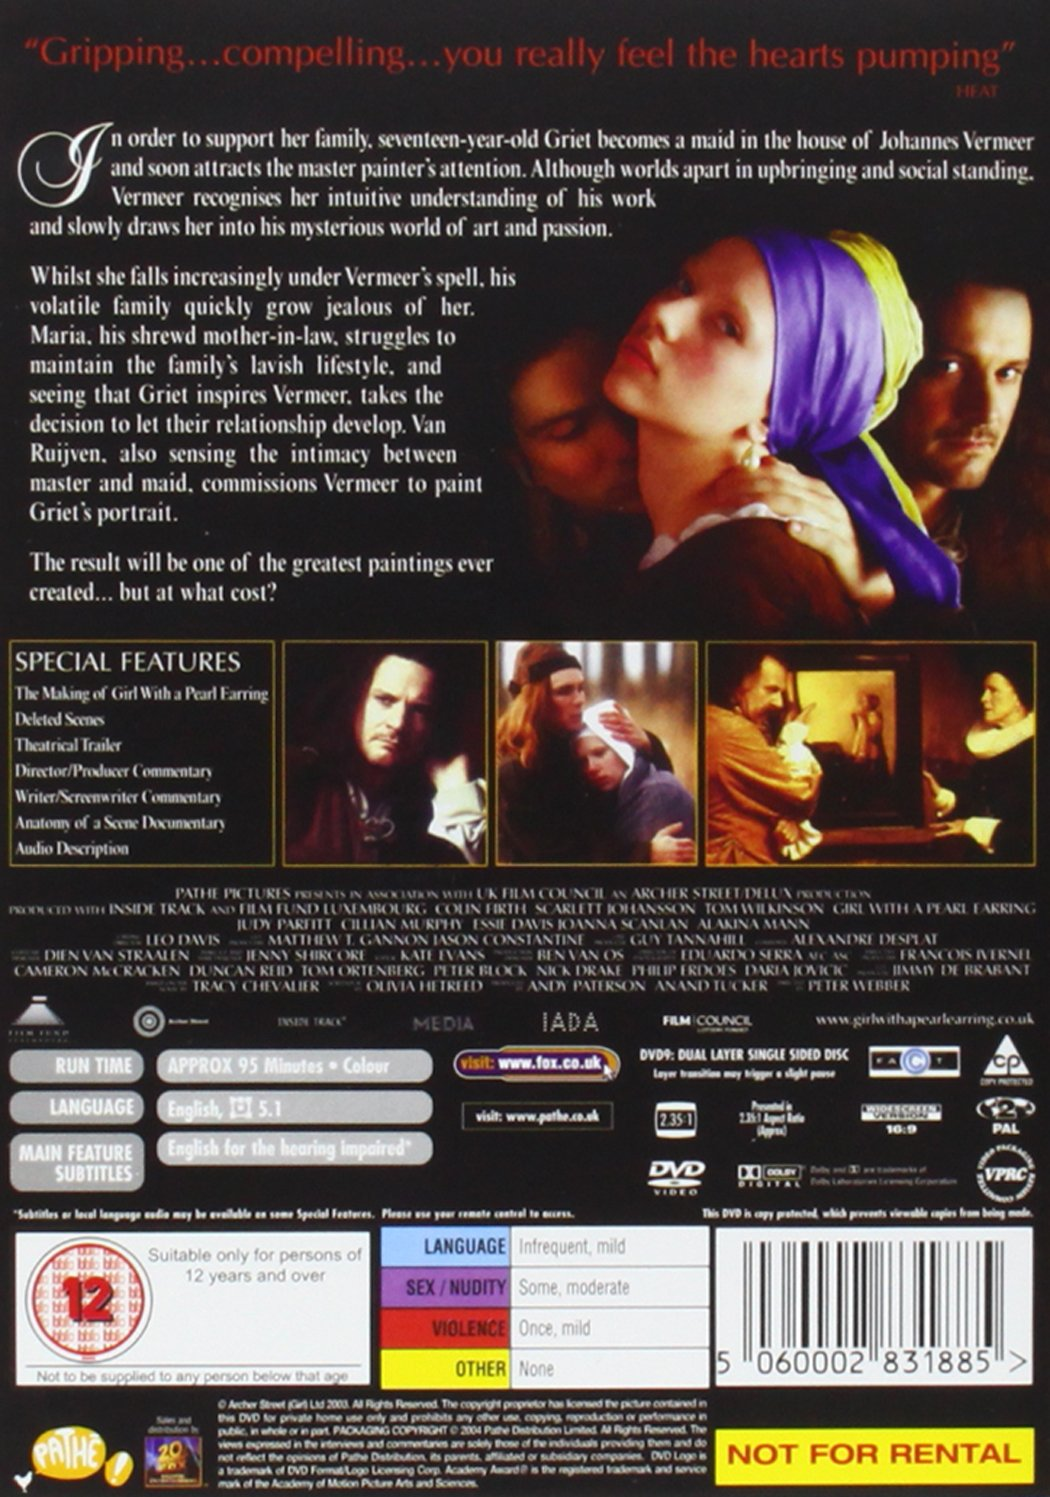 Amazon.com: Girl with a Pearl Earring: Scarlett Johansson, Colin Firth, Tom Wilkinson, Judy Parfitt, Cillian Murphy, Essie Davis, Joanna Scanlan, ...